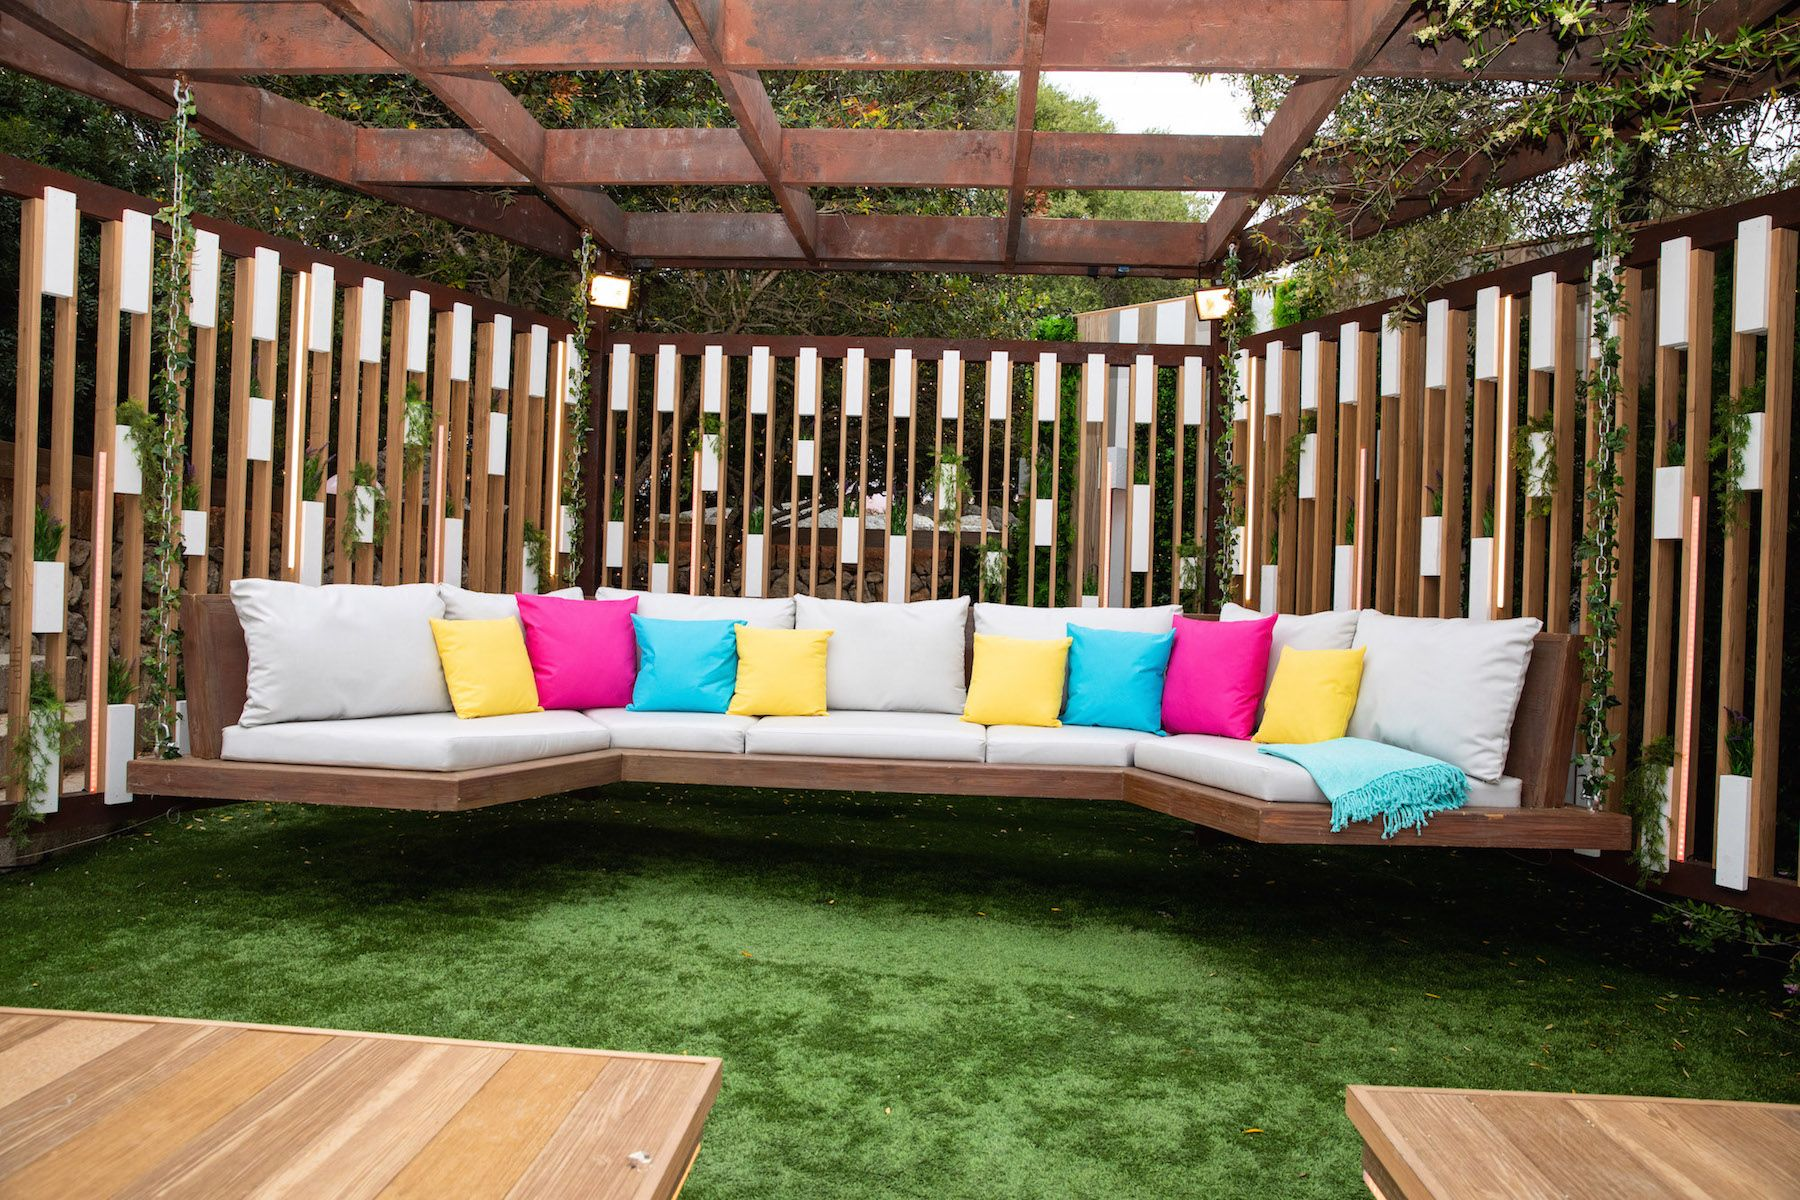 Image may contain: Love Island villa, 2019, location, Couch, Wood, Table, Outdoors, Pillow, Pergola, Furniture, Cushion, Patio, Porch